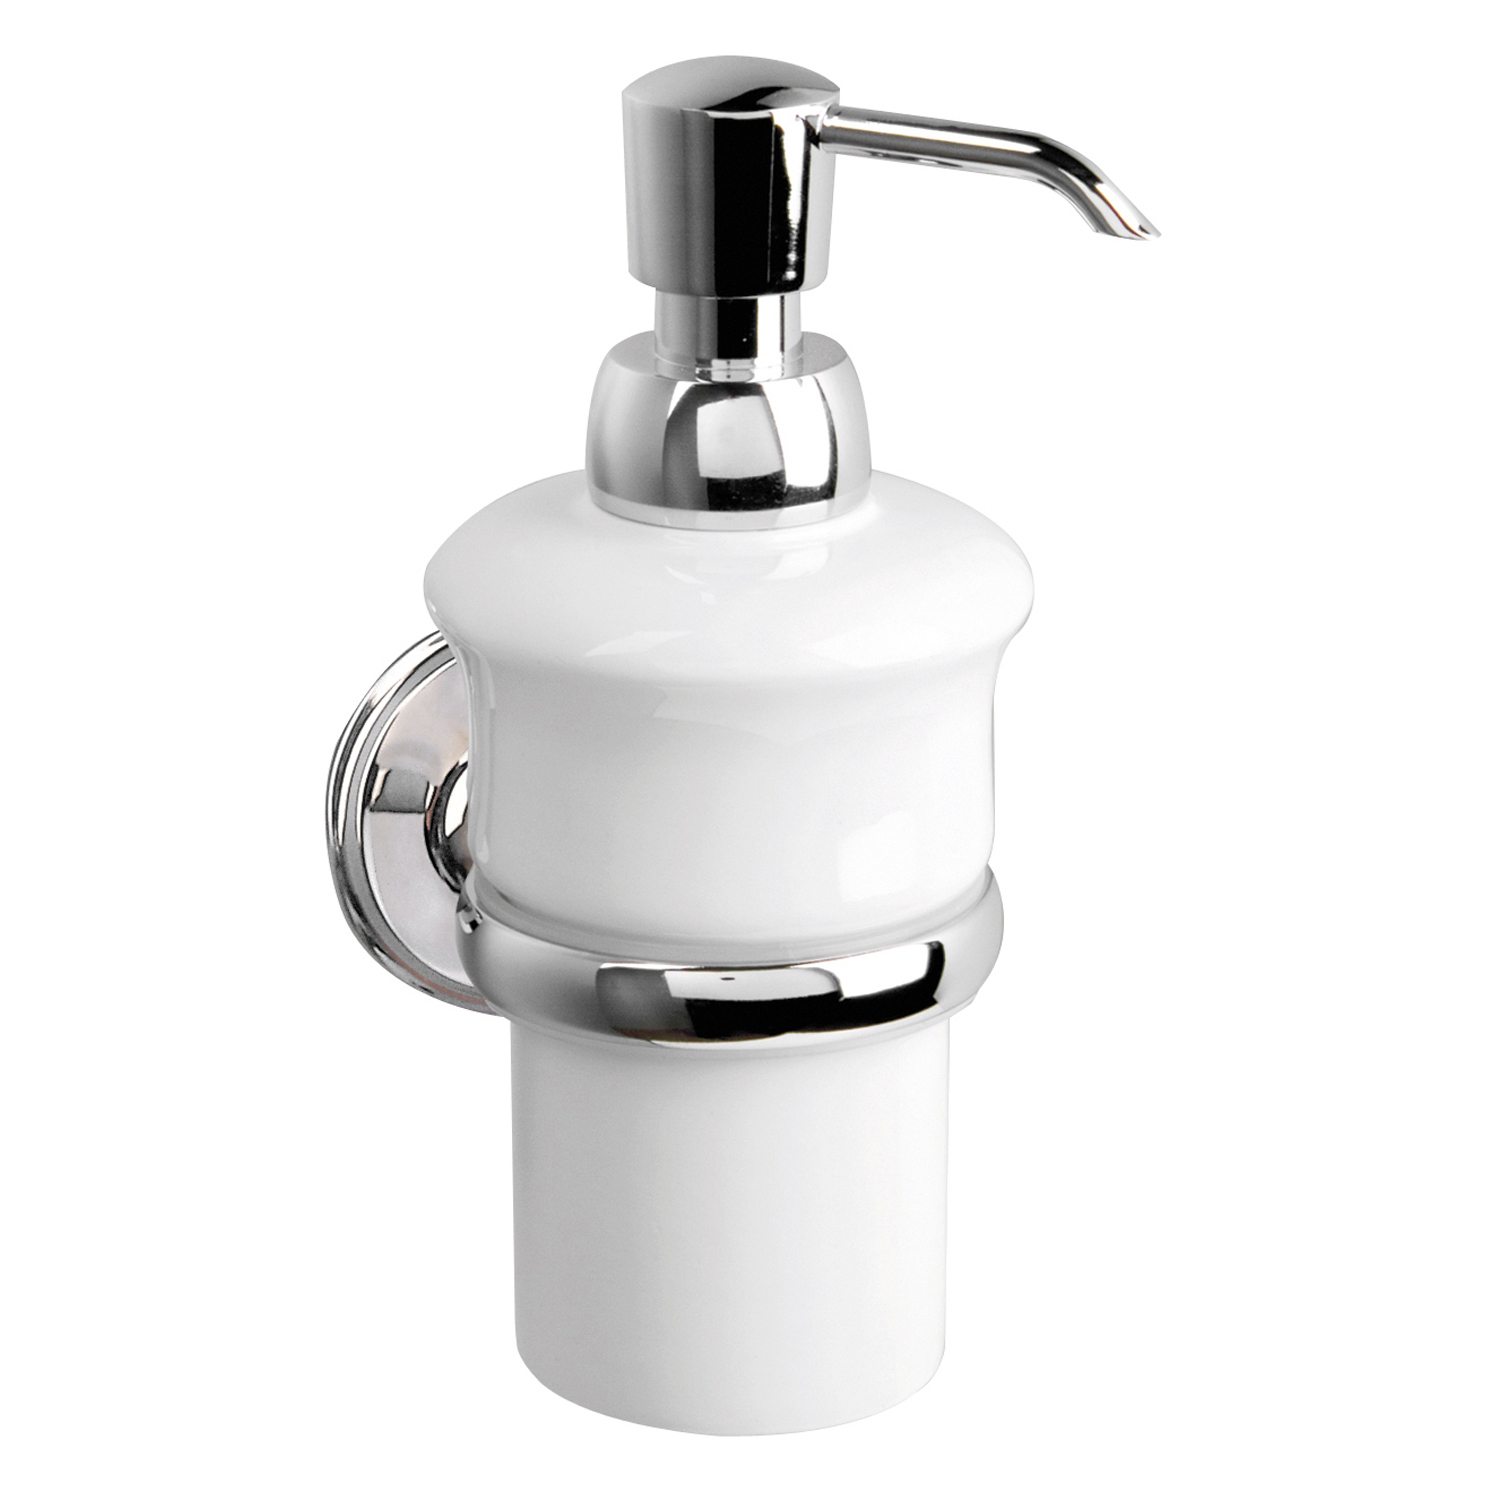 Image of Miller Stockholm Soap Dispenser & Holder